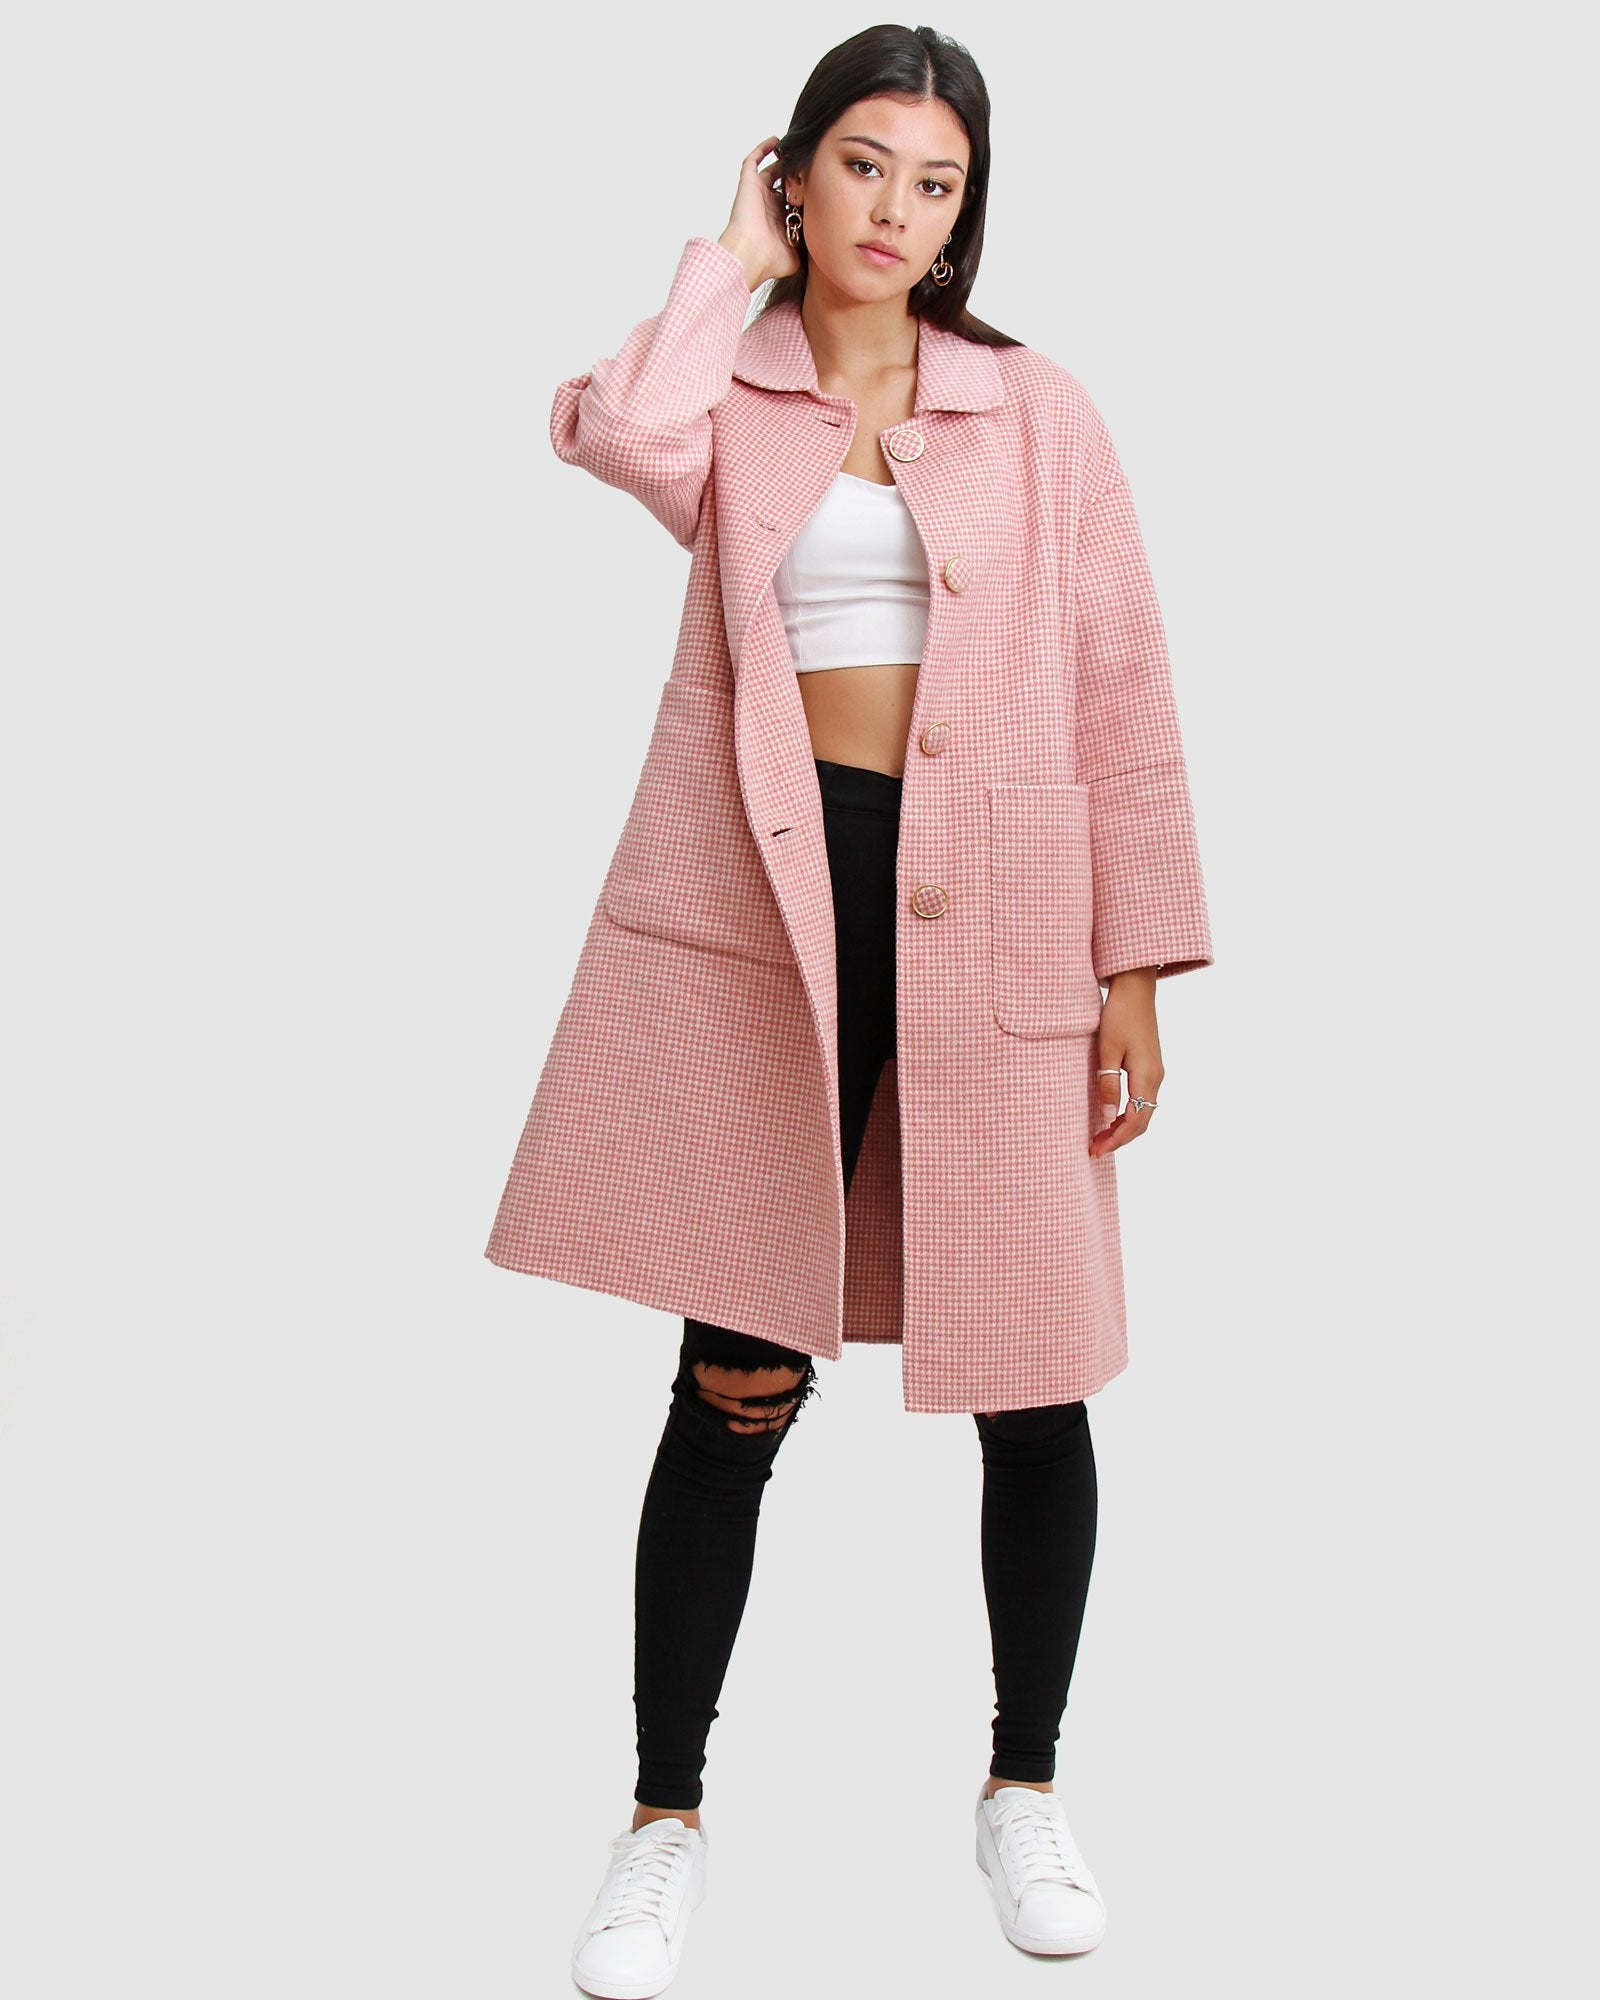 So Chic  Wool Blend Coat - Blush